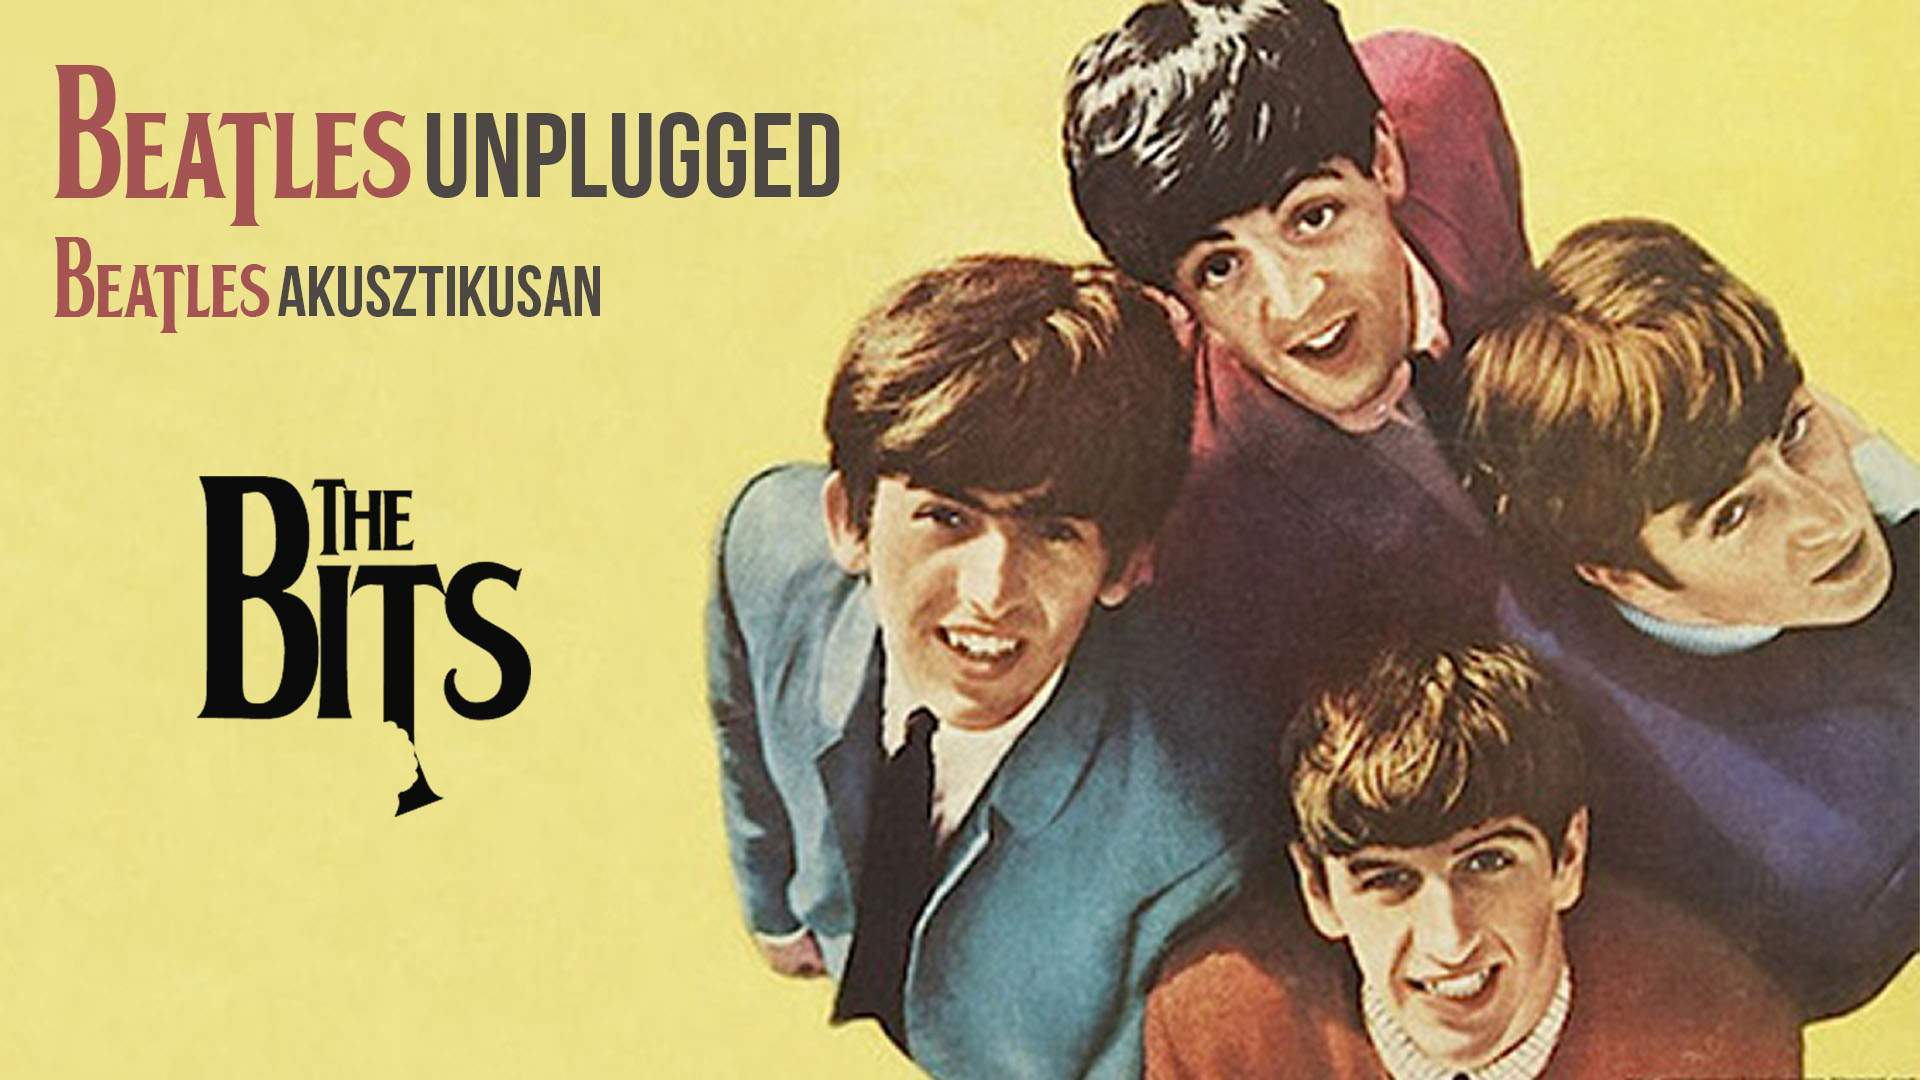 The Bits: Best of The Beatles